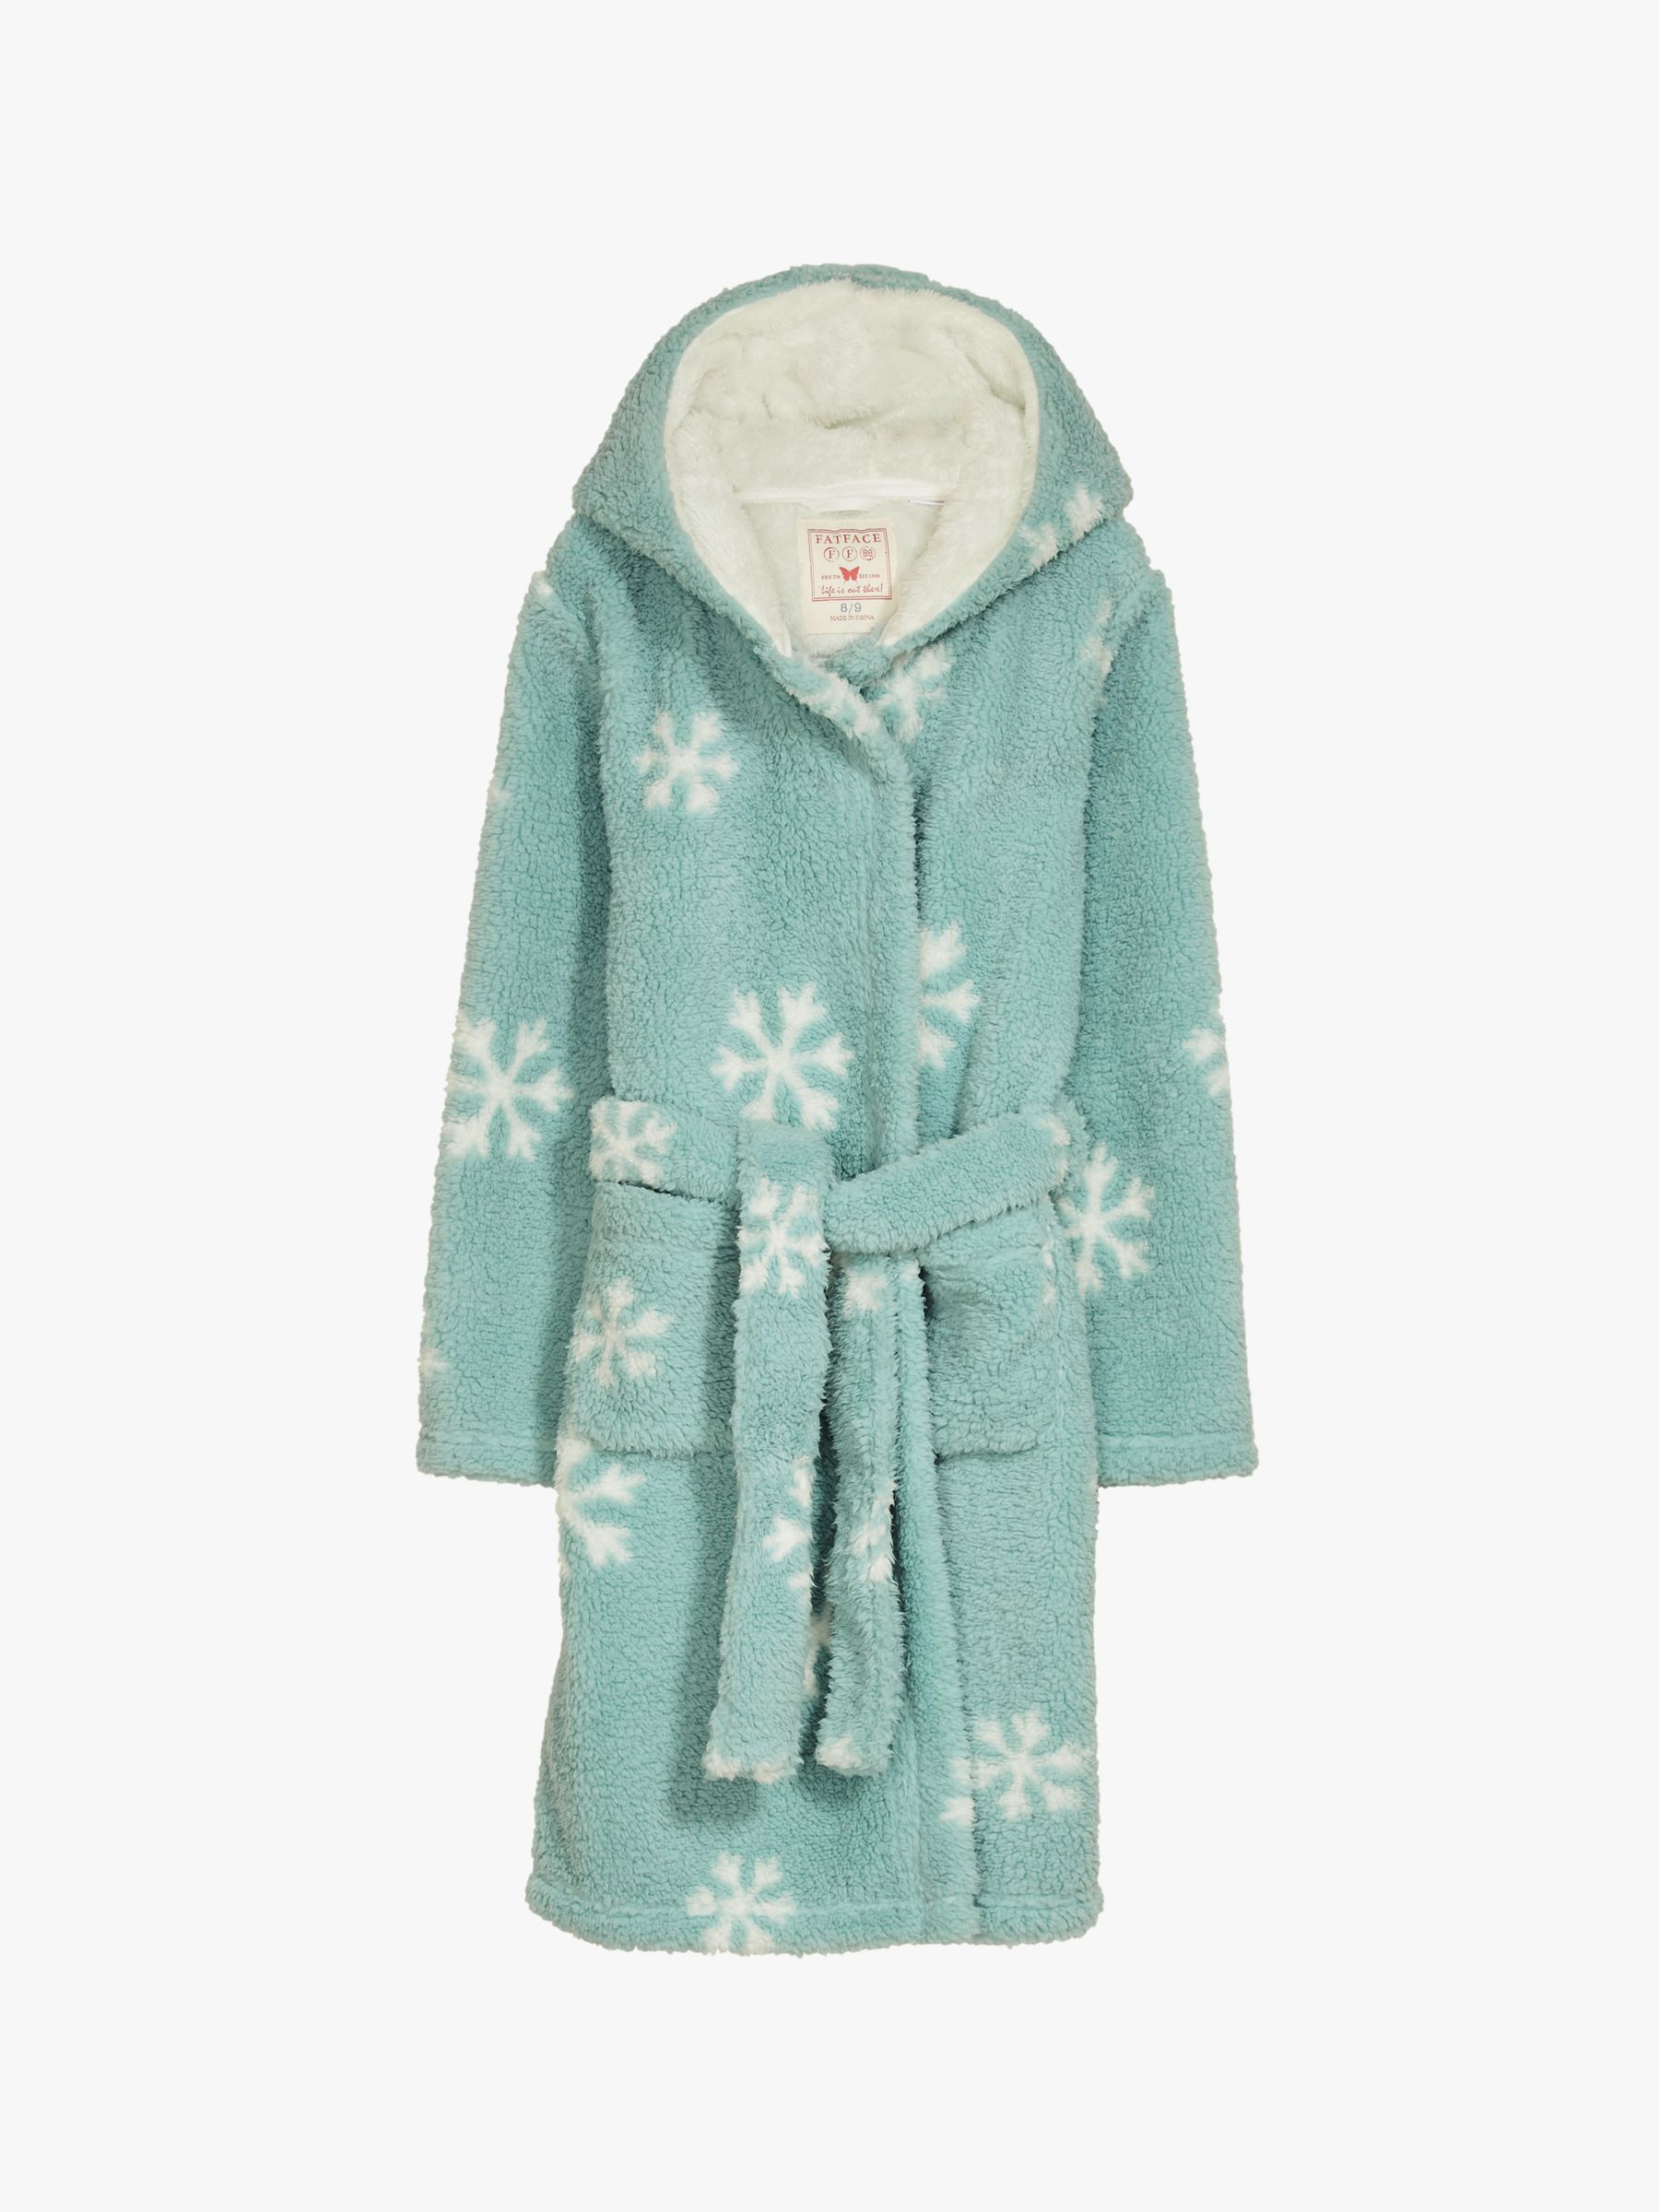 New Kids Supersoft Hooded Bath Robe gown Sizes Age 6-7 Girls Snowflake White